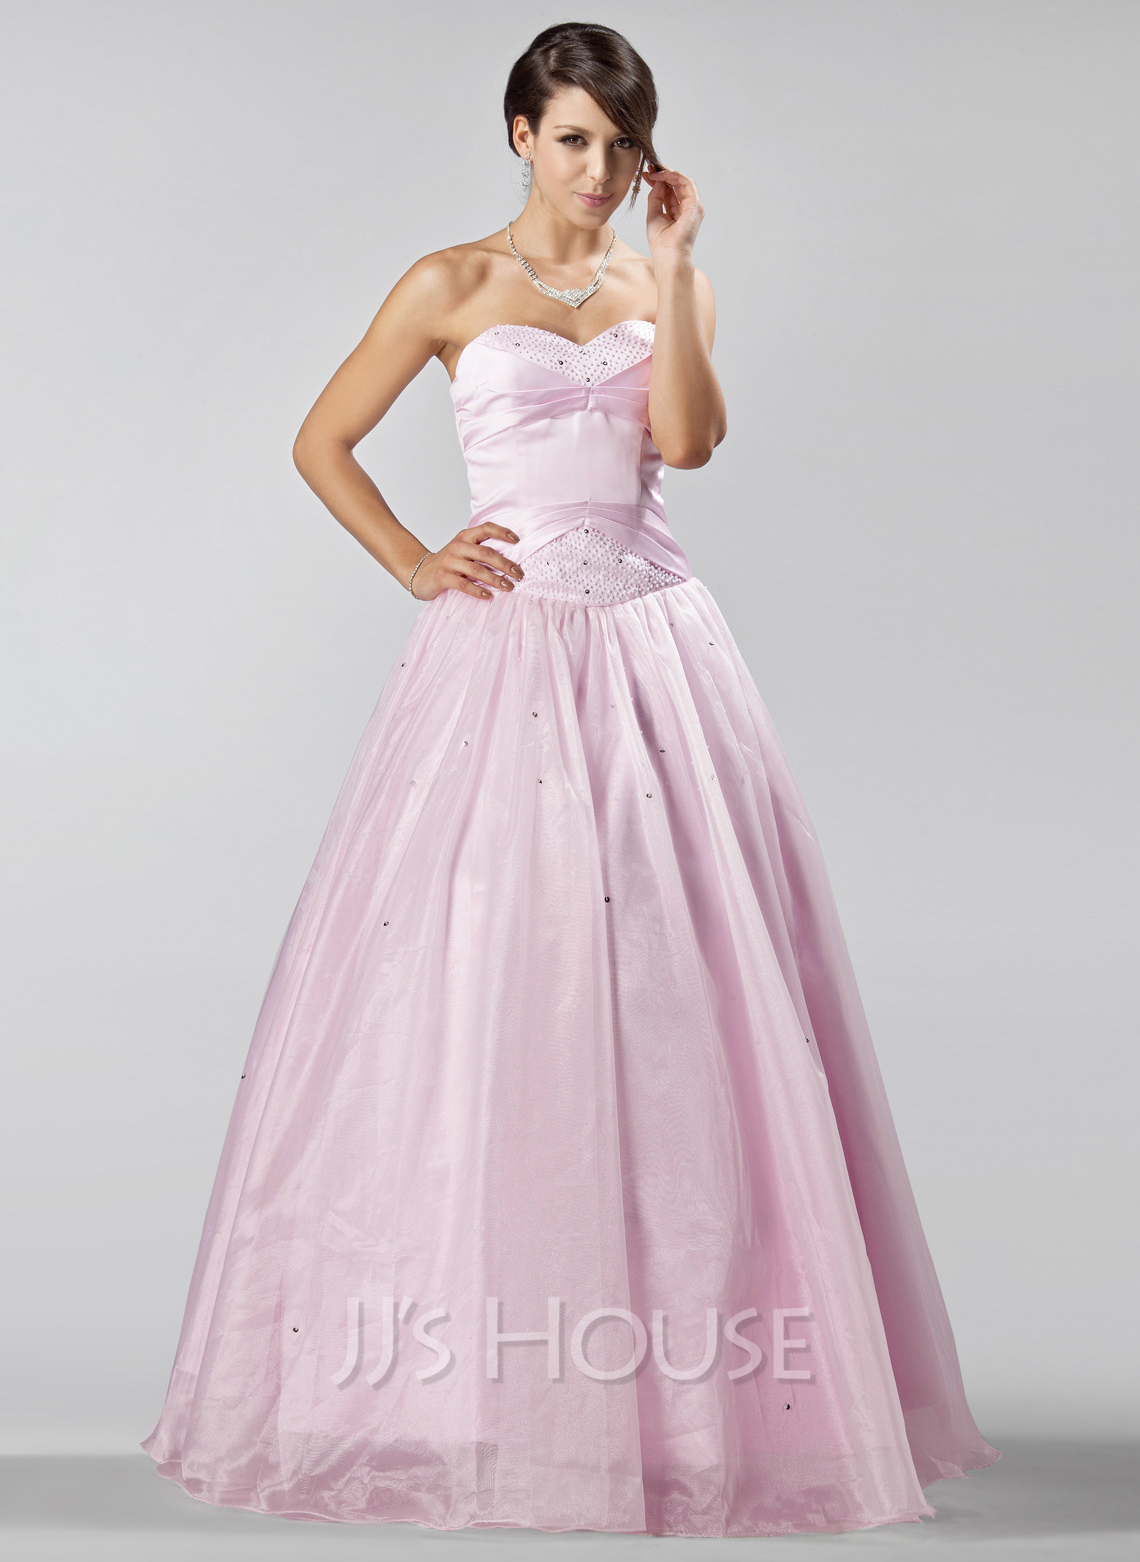 A-Line/Princess Sweetheart Floor-Length Organza Quinceanera Dress With Beading